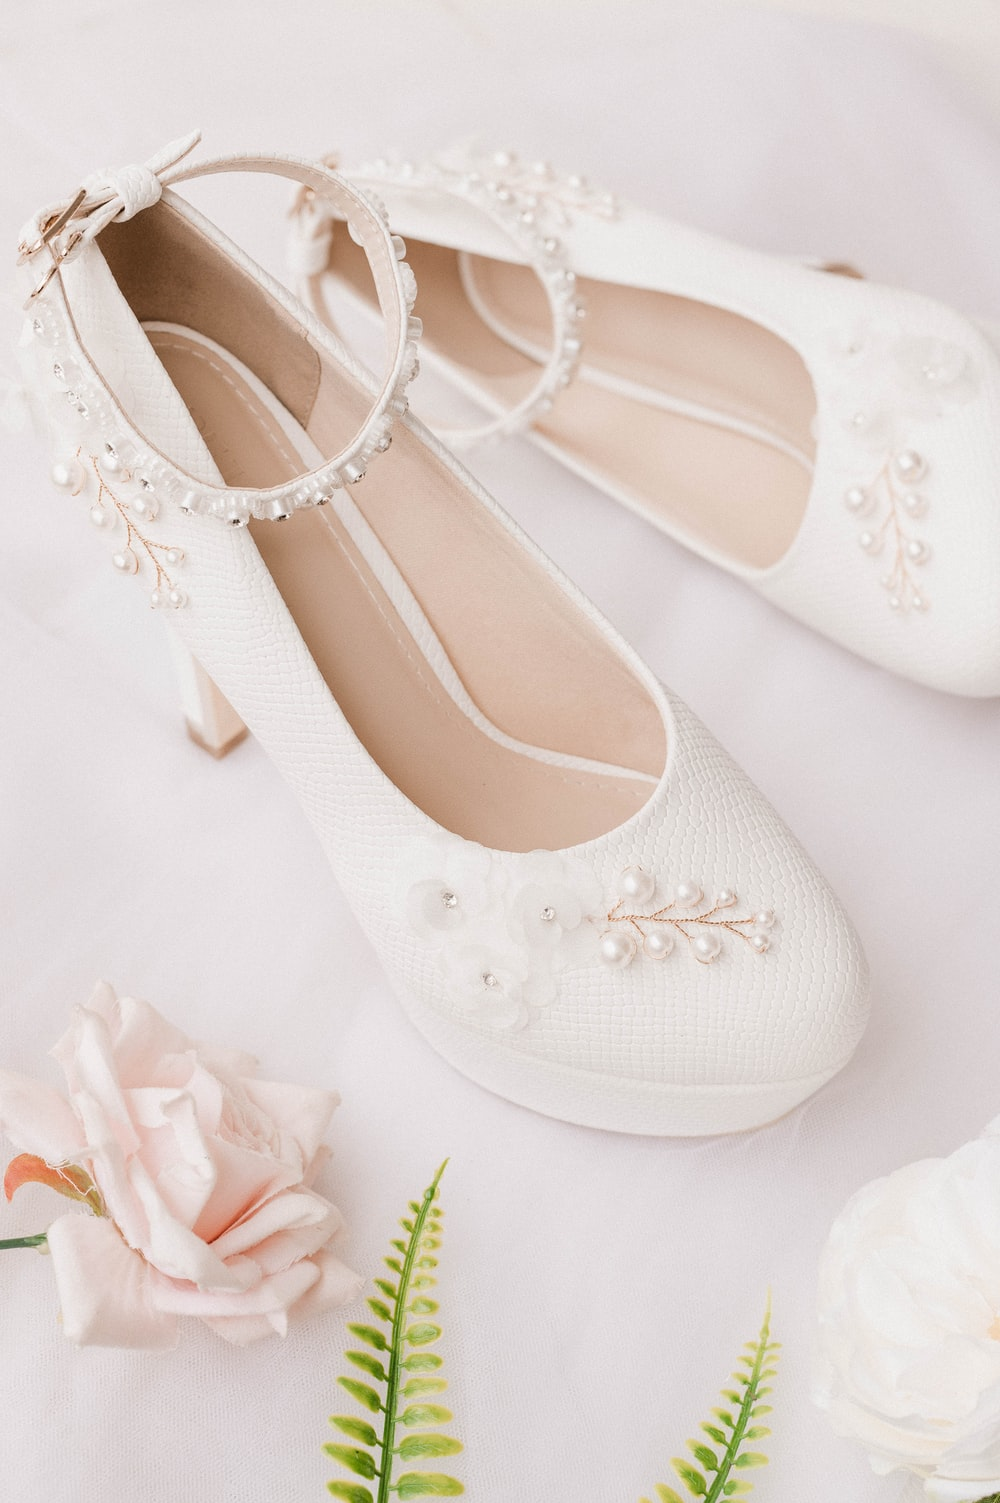 white and gray floral peep toe heeled sandals